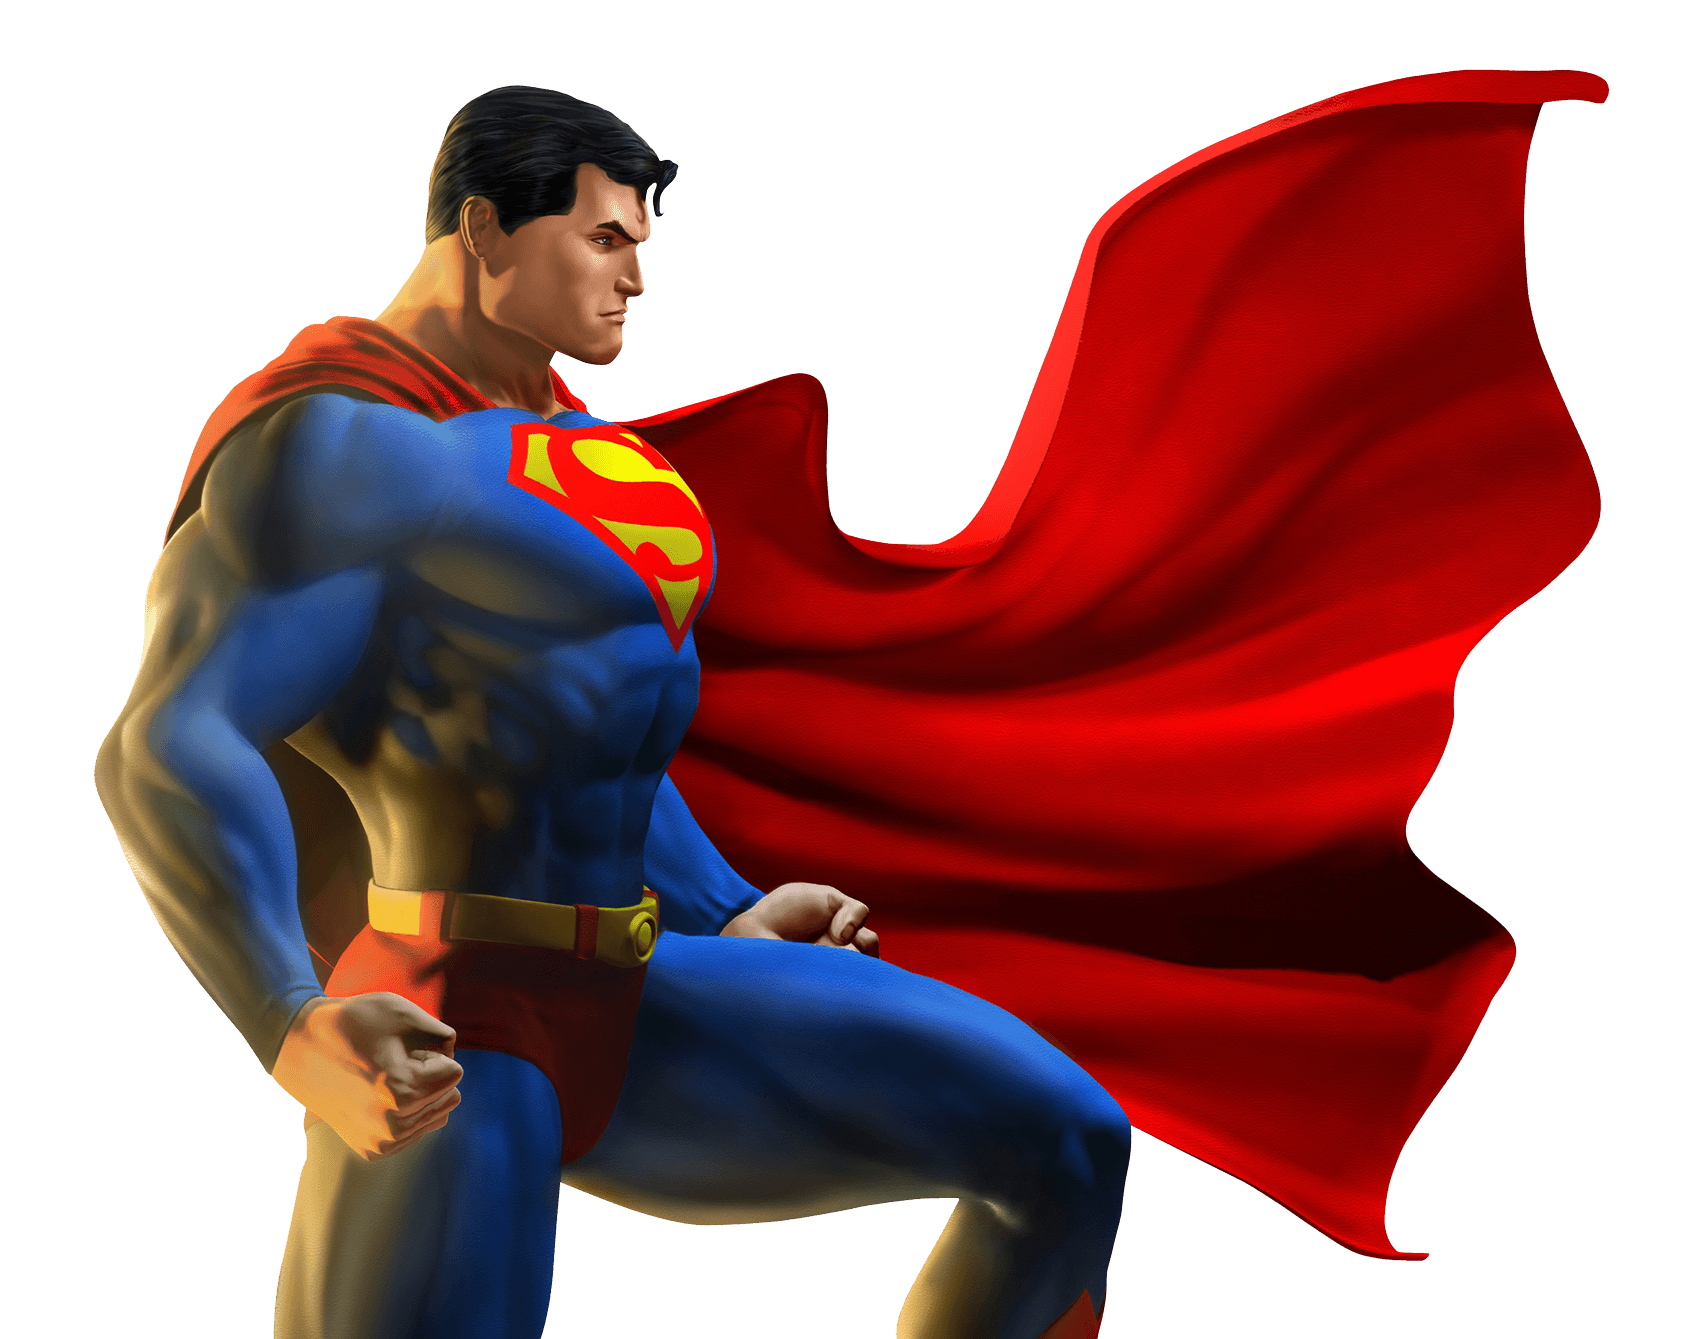 Superman Png High Definition Quality